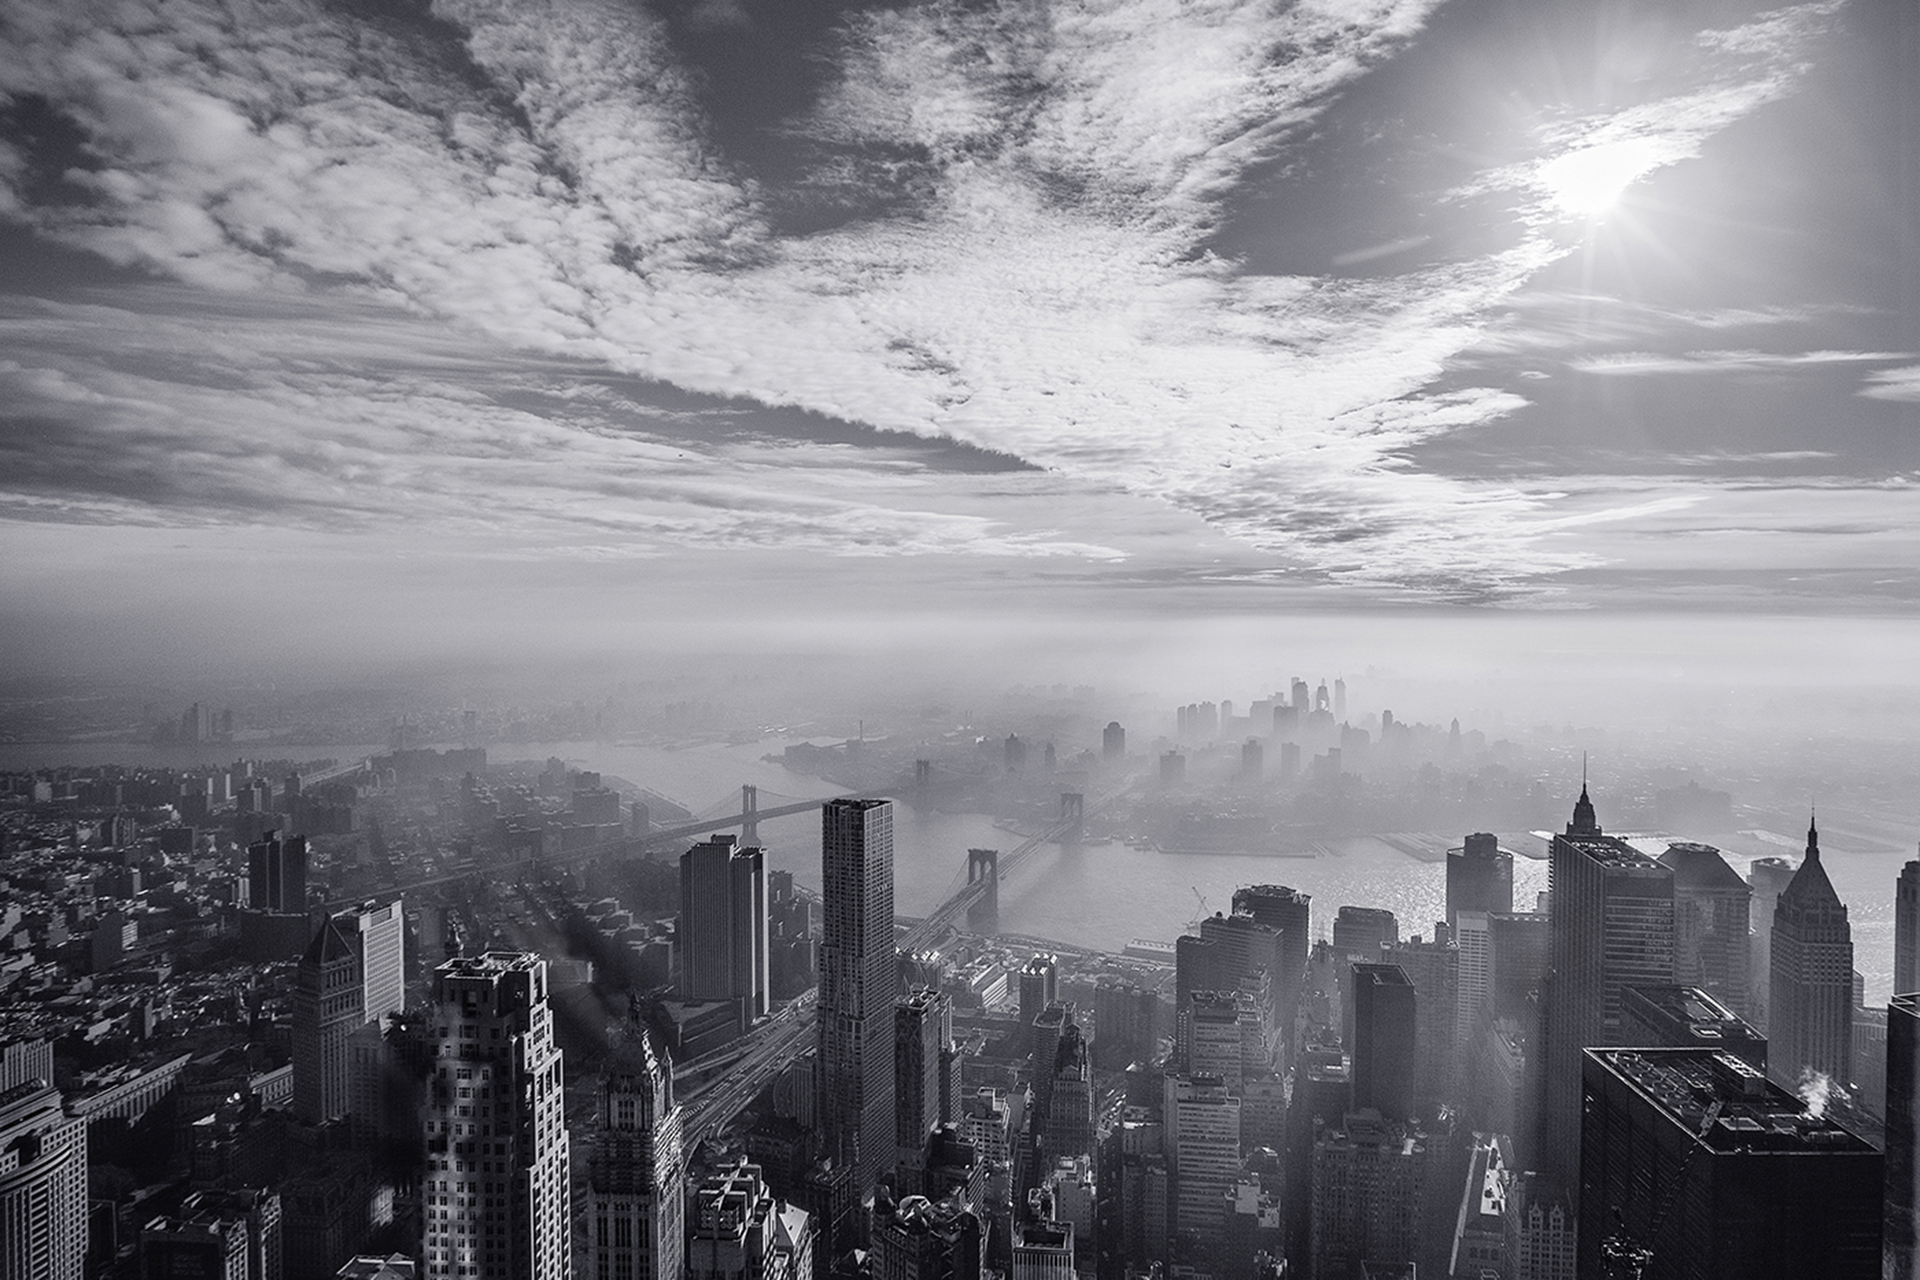 Brooklyn from One World Trade Center